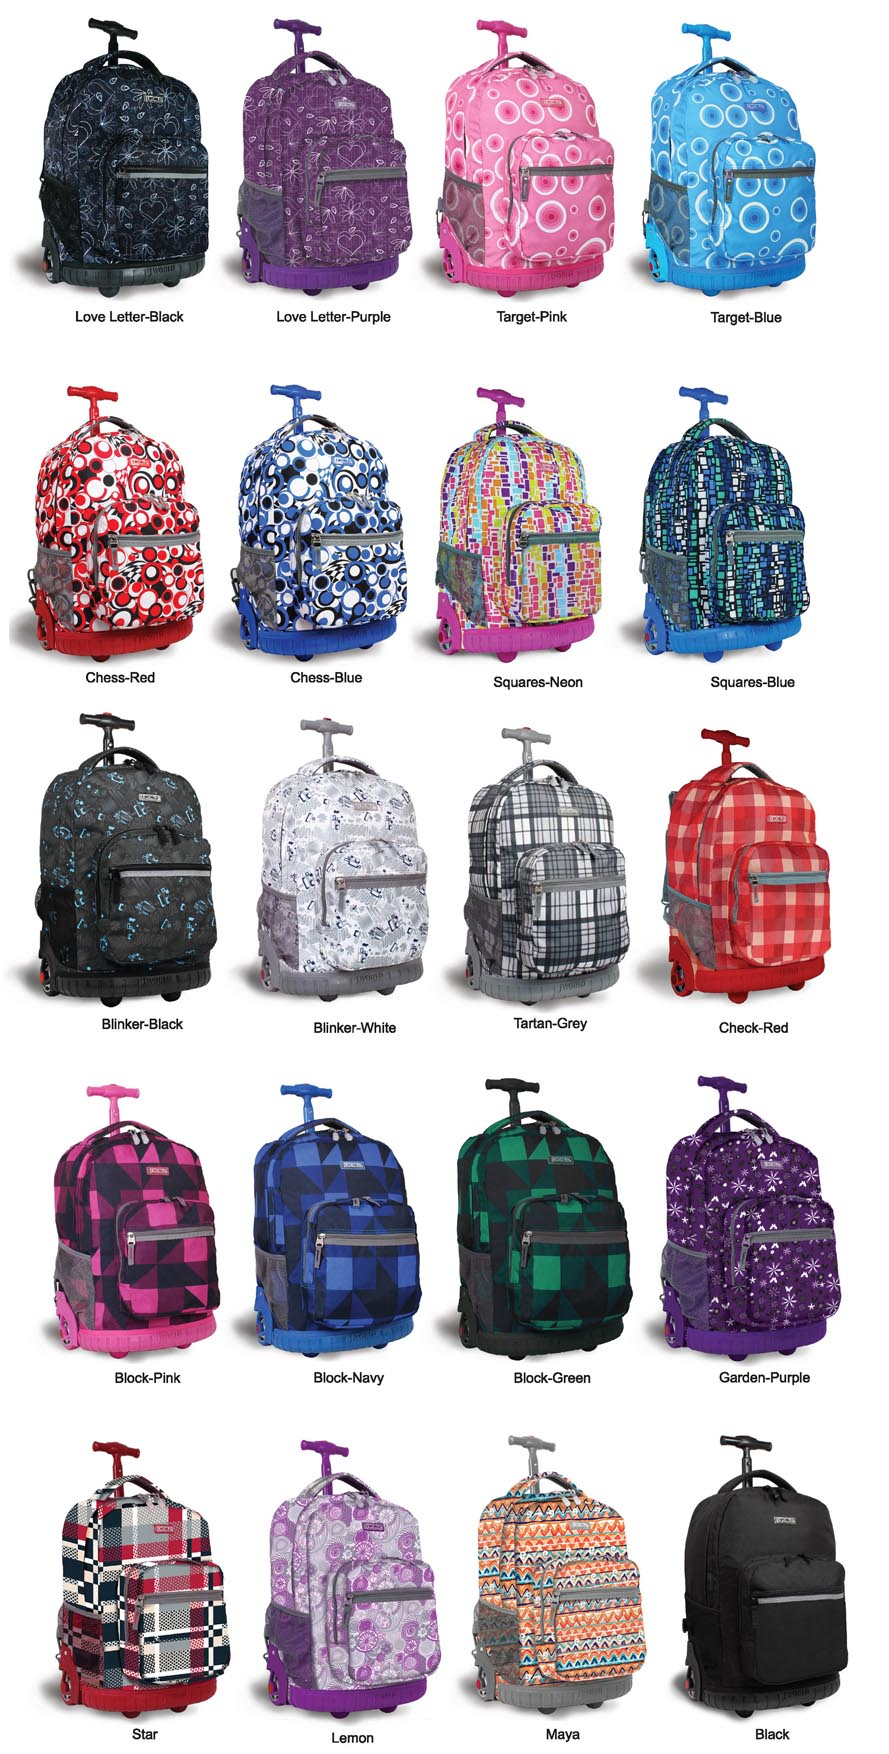 J World Rolling Backpack 52L7GYx8